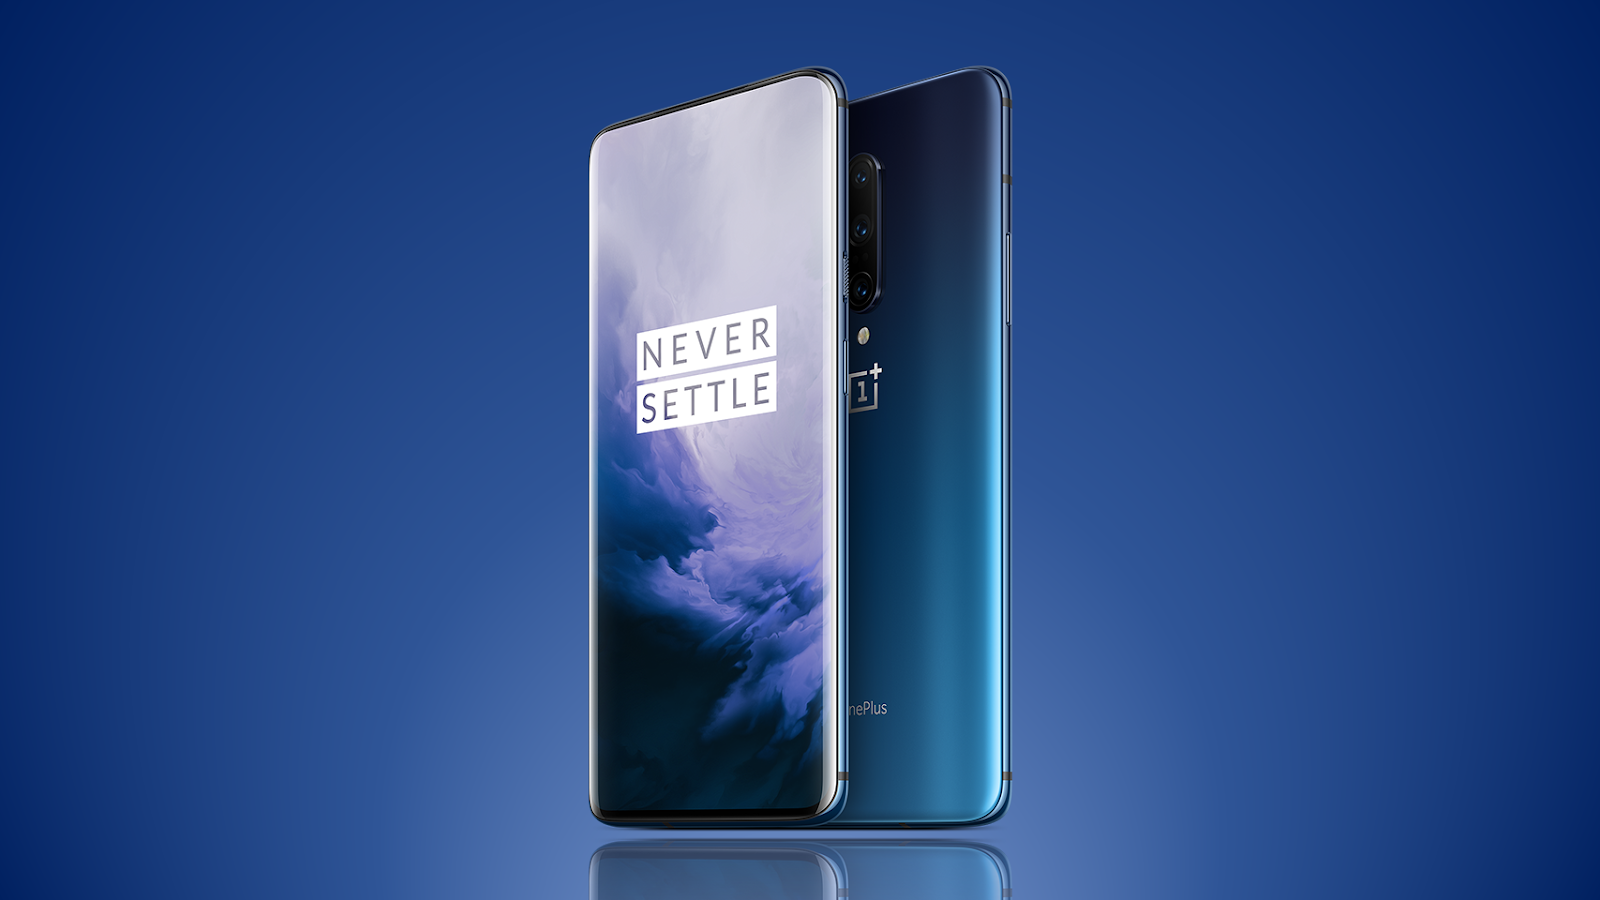 OnePlus 7 Pro with QHD+ AMOLED display at 90 Hz refresh rate